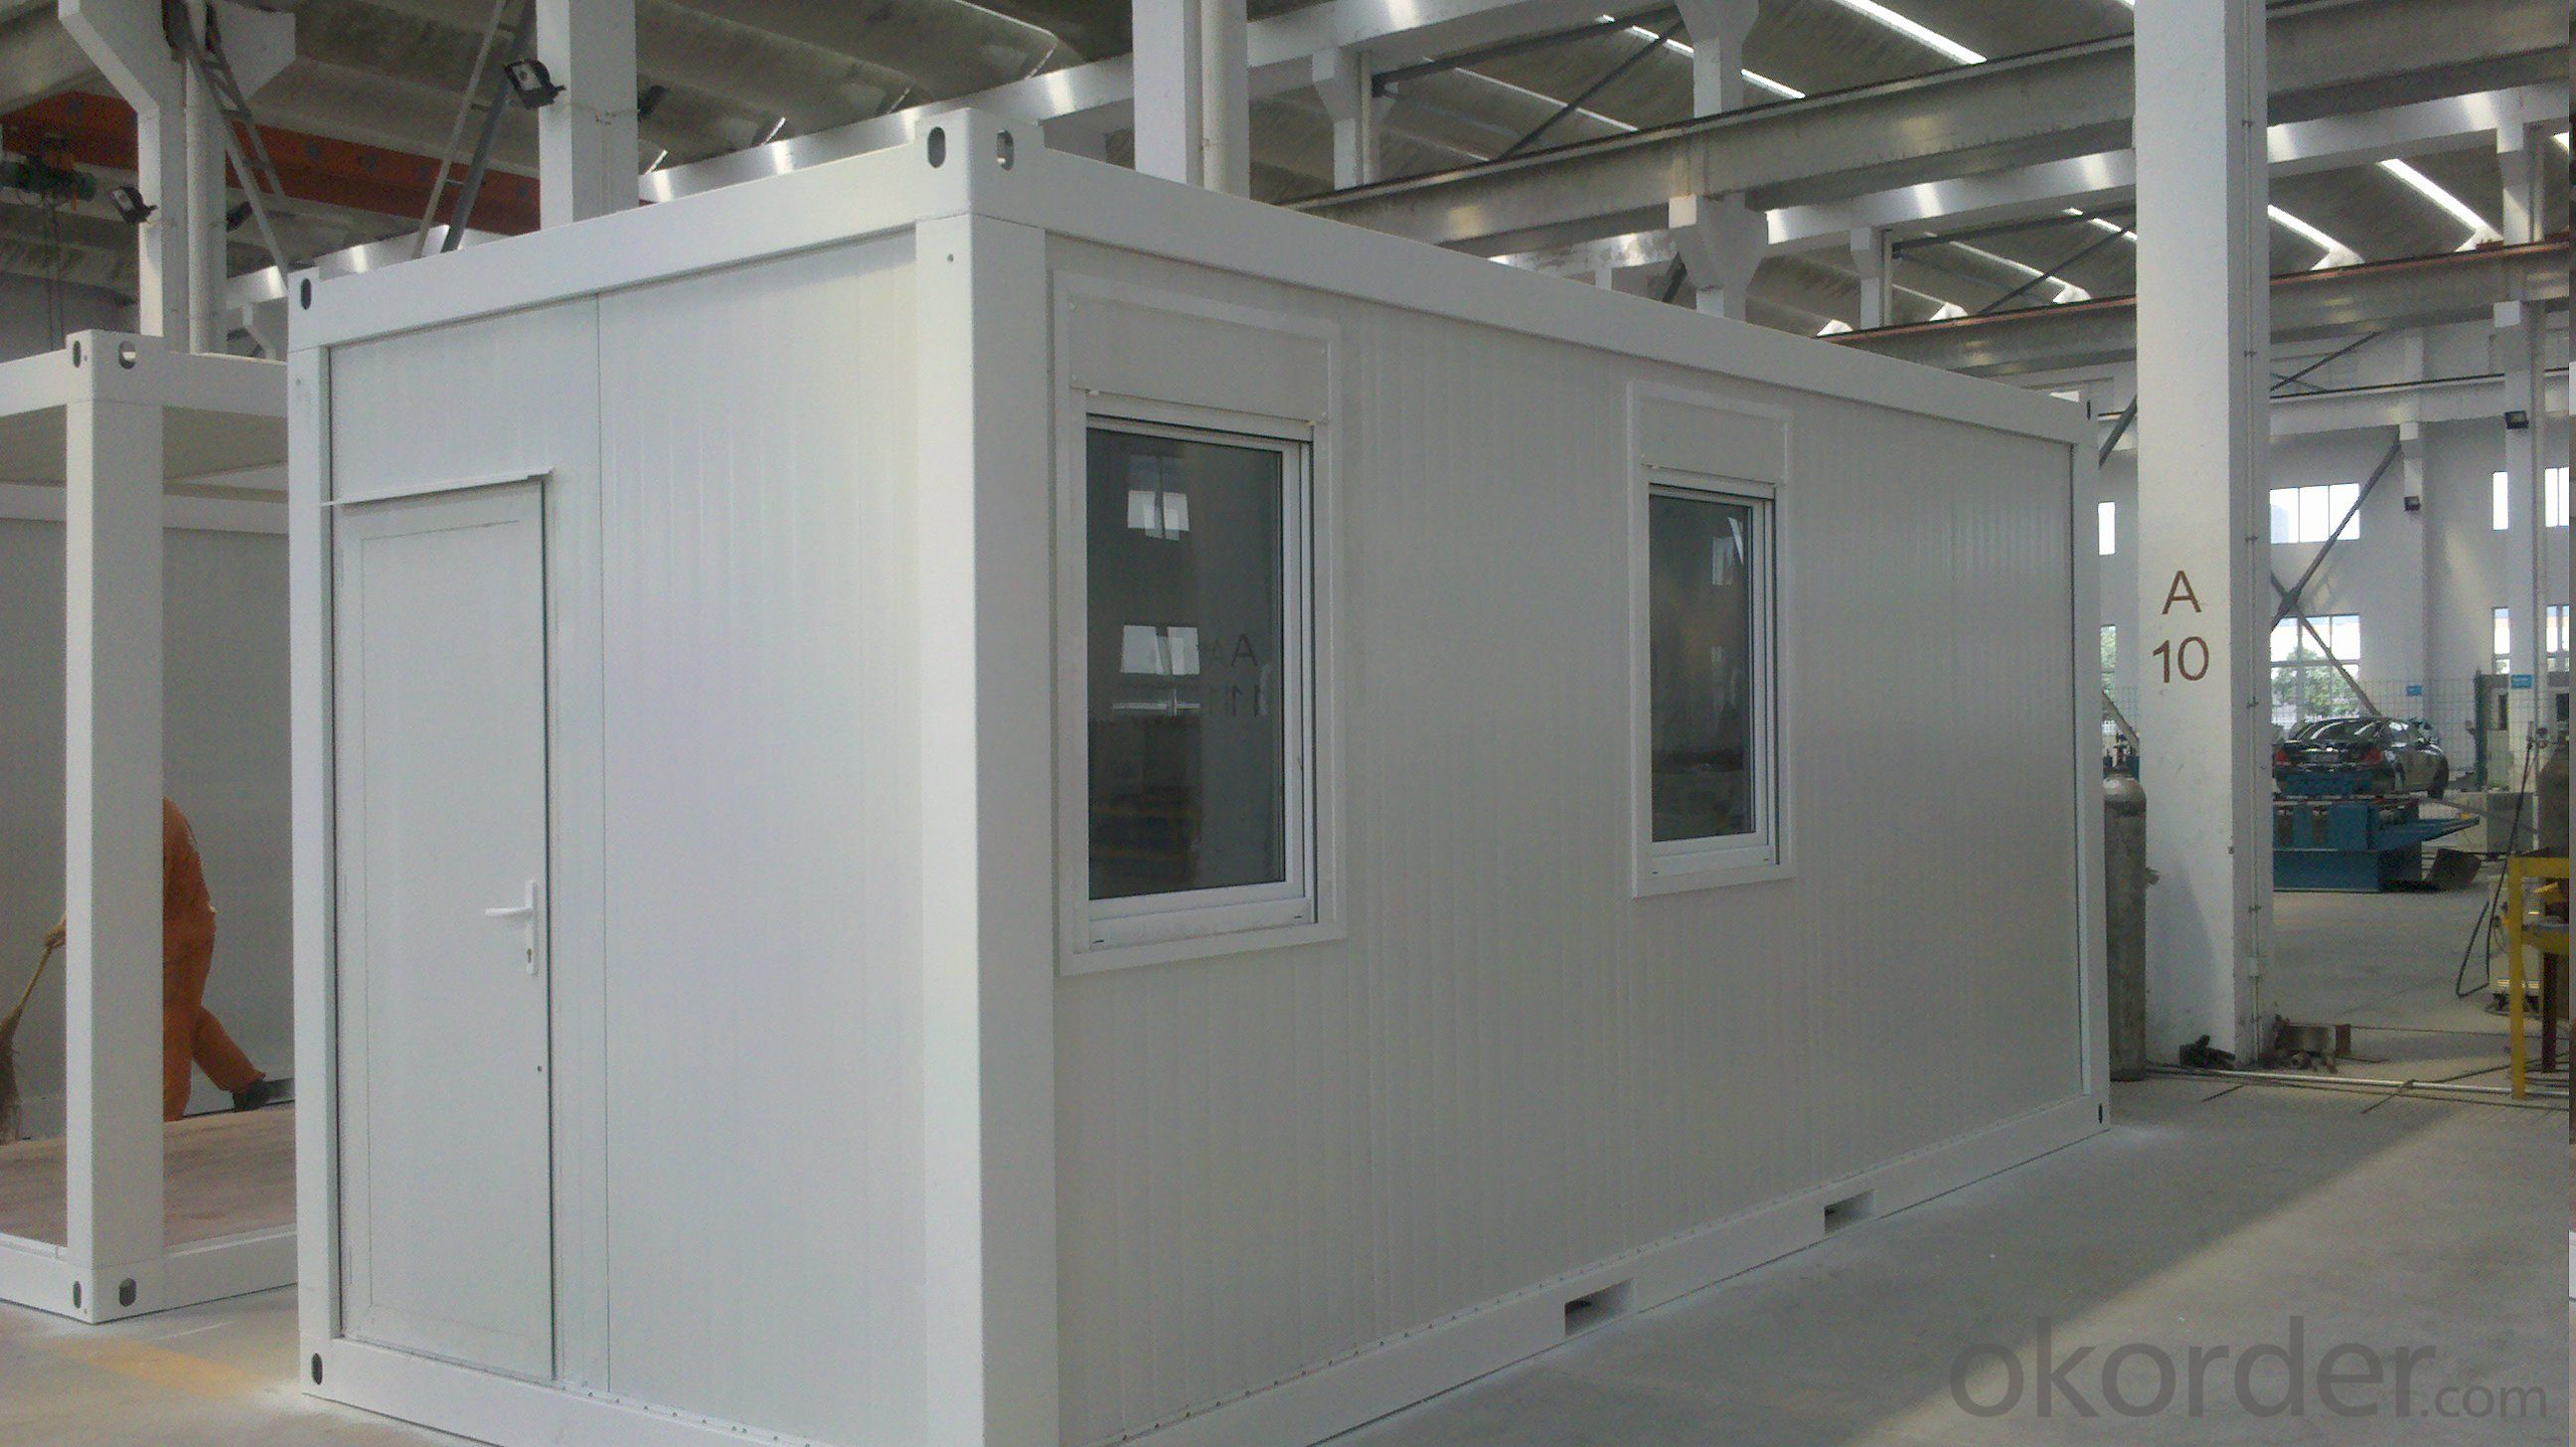 Well Sold  modern prefabricated container house for sale